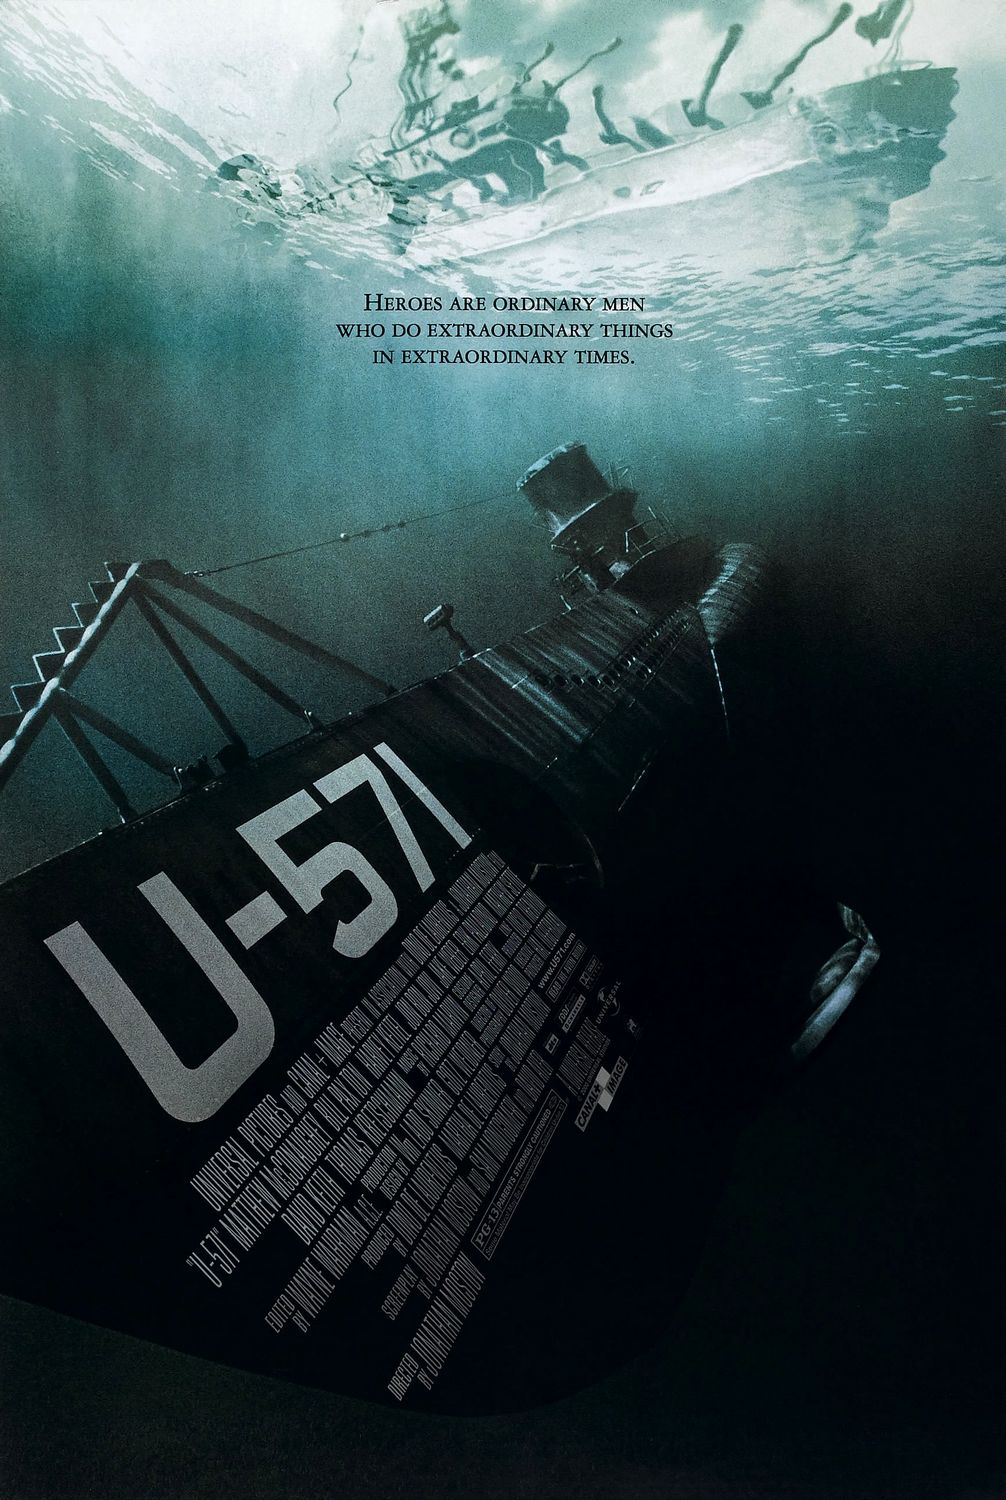 Image U-571 Watch Full Movie Free Online